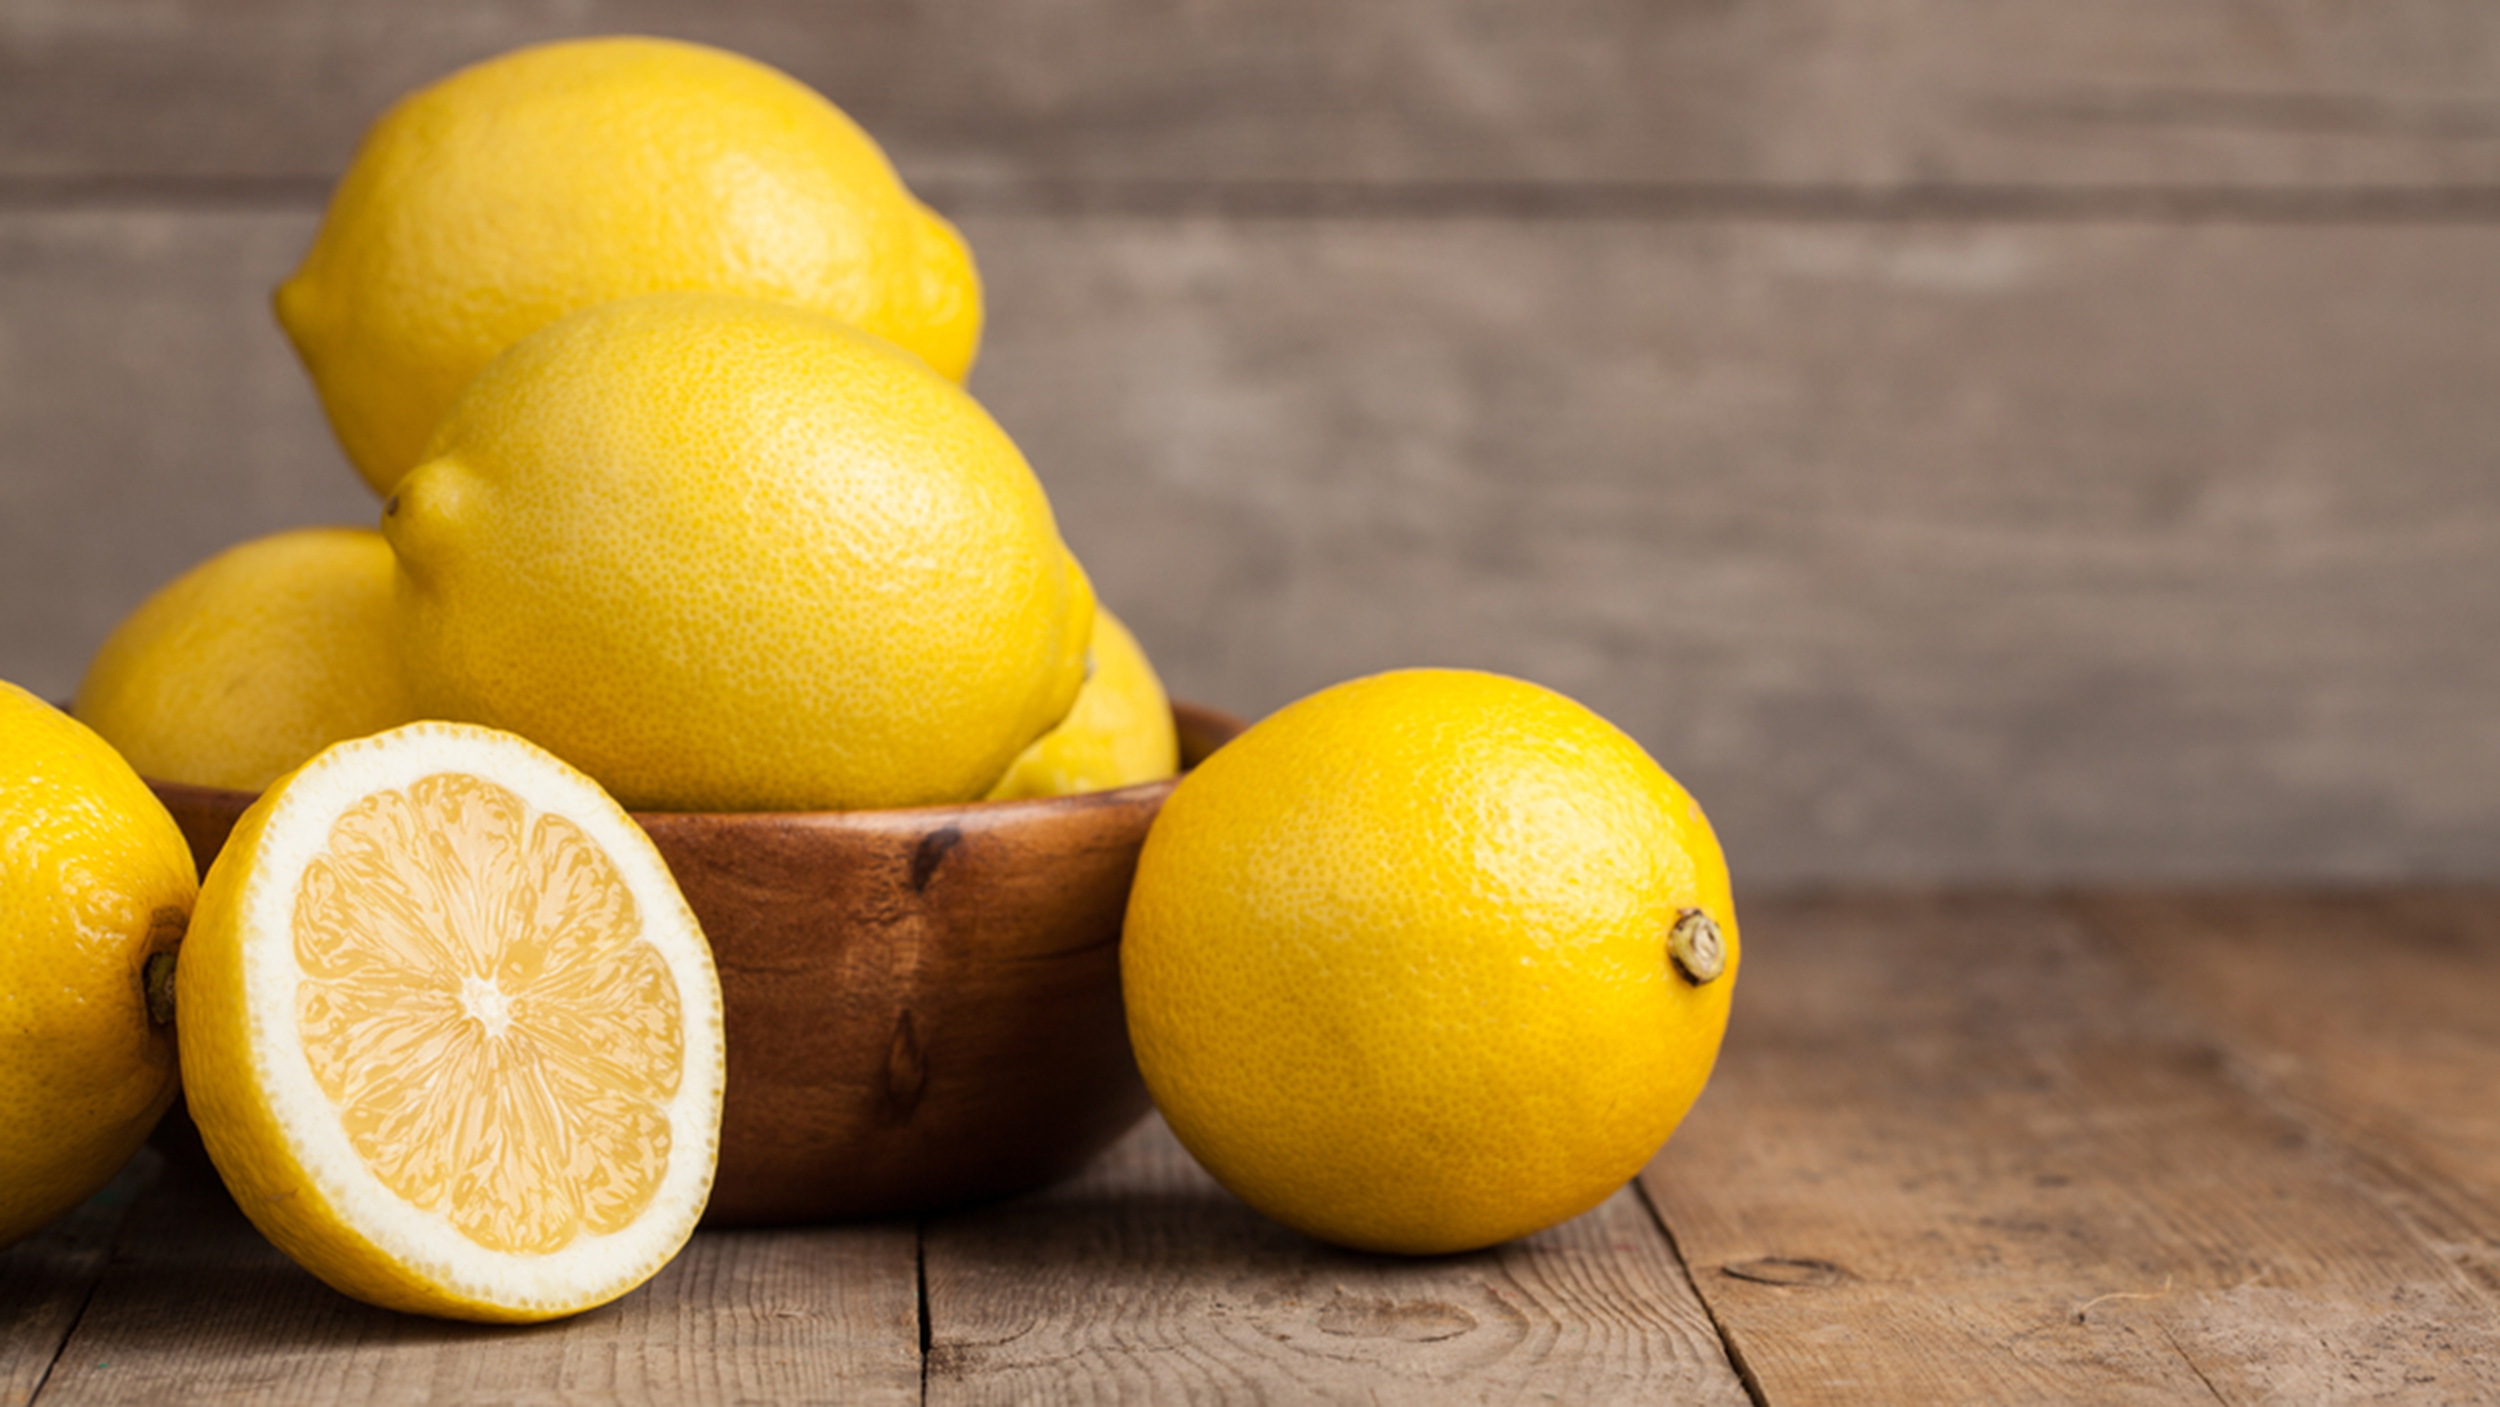 Lemon DIY: How to clean your home with lemon - TODAY.com